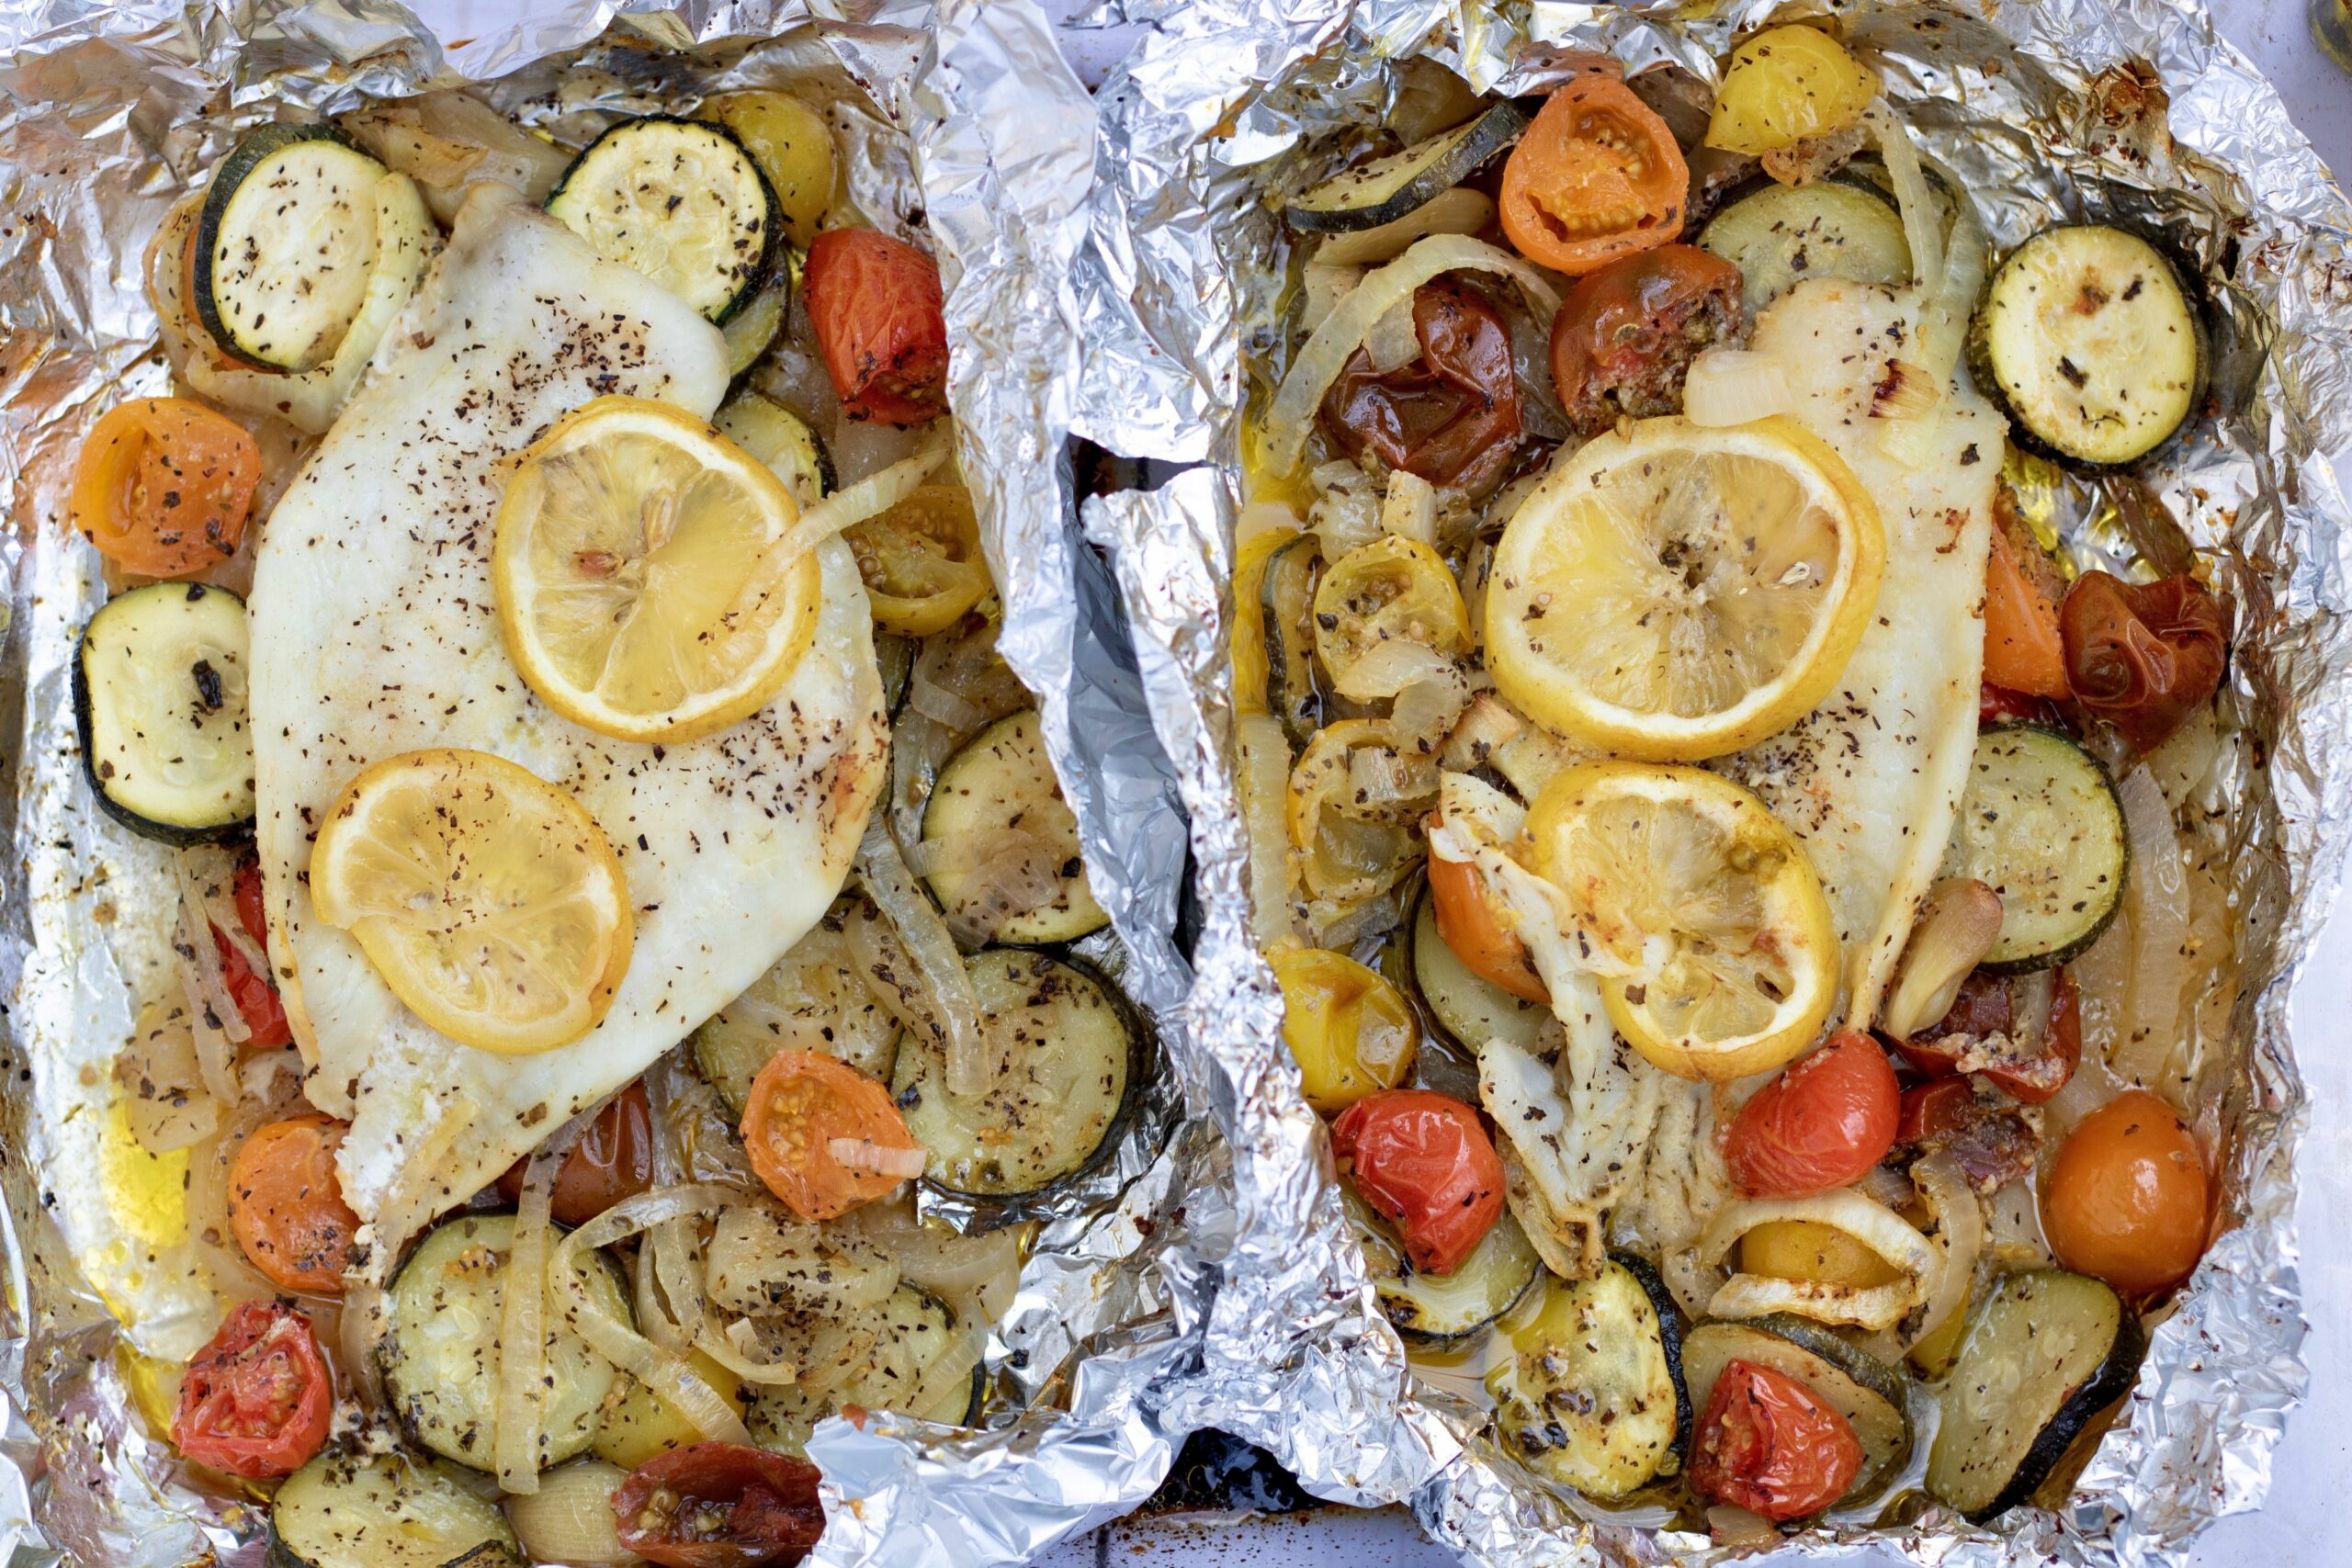 Foil Baked Fish with Veggies - Recipe Fish On The Grill In Foil